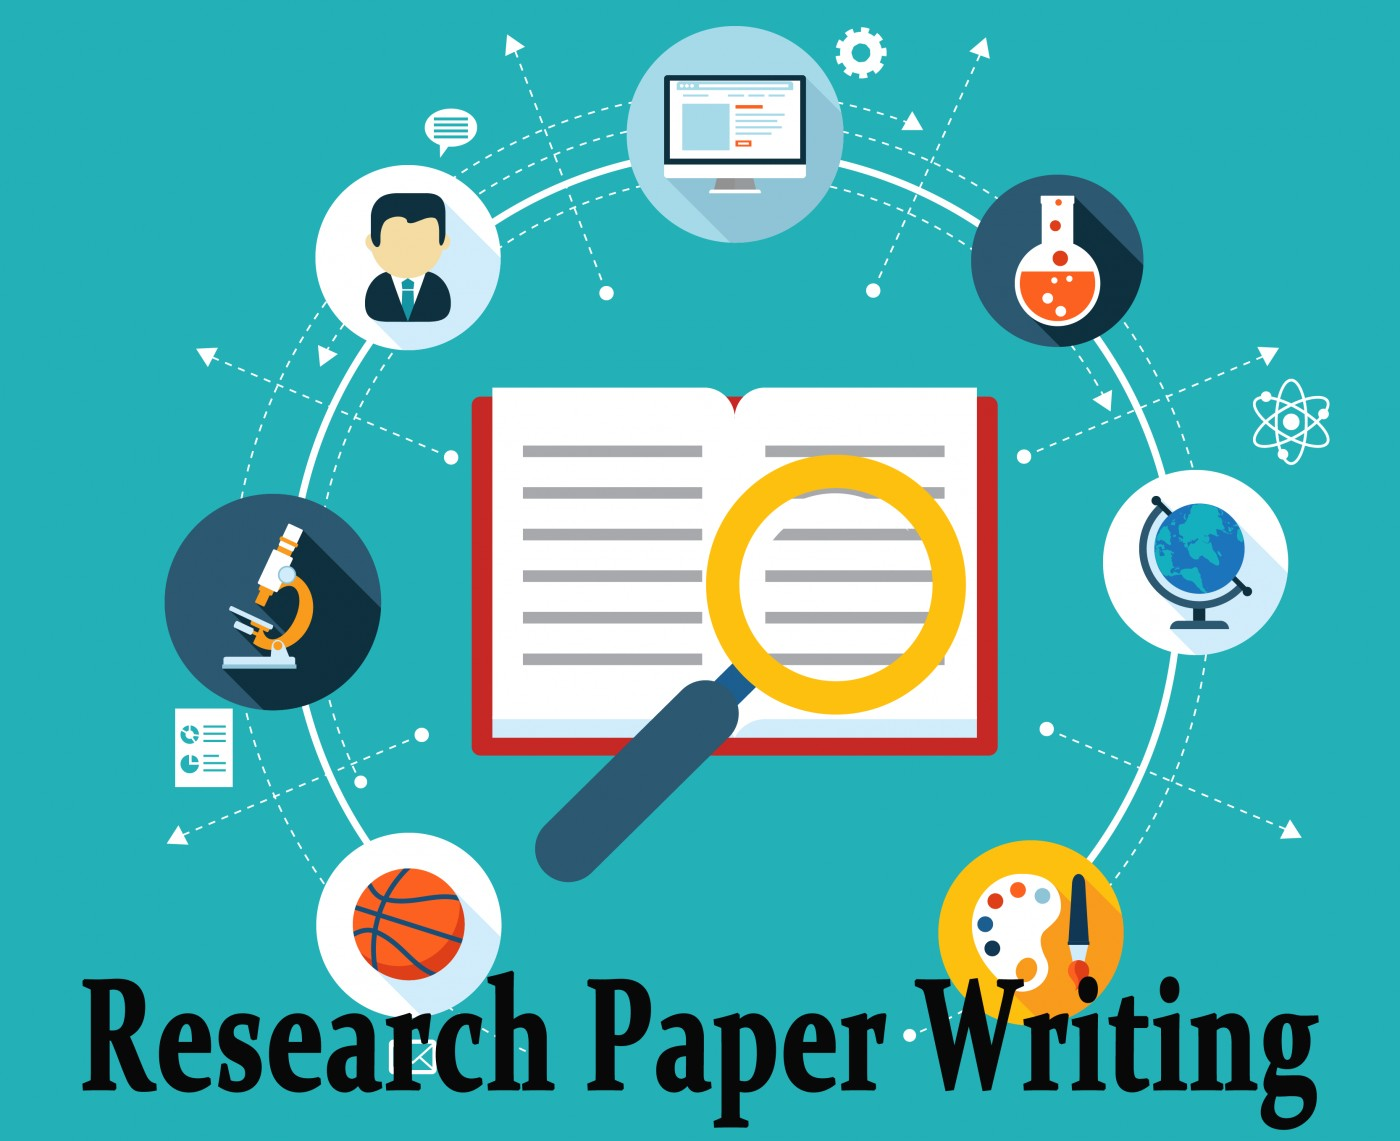 009 Writing The Research Paper 503 Effective Phenomenal Quizlet How To Write A Outline Apa 1400